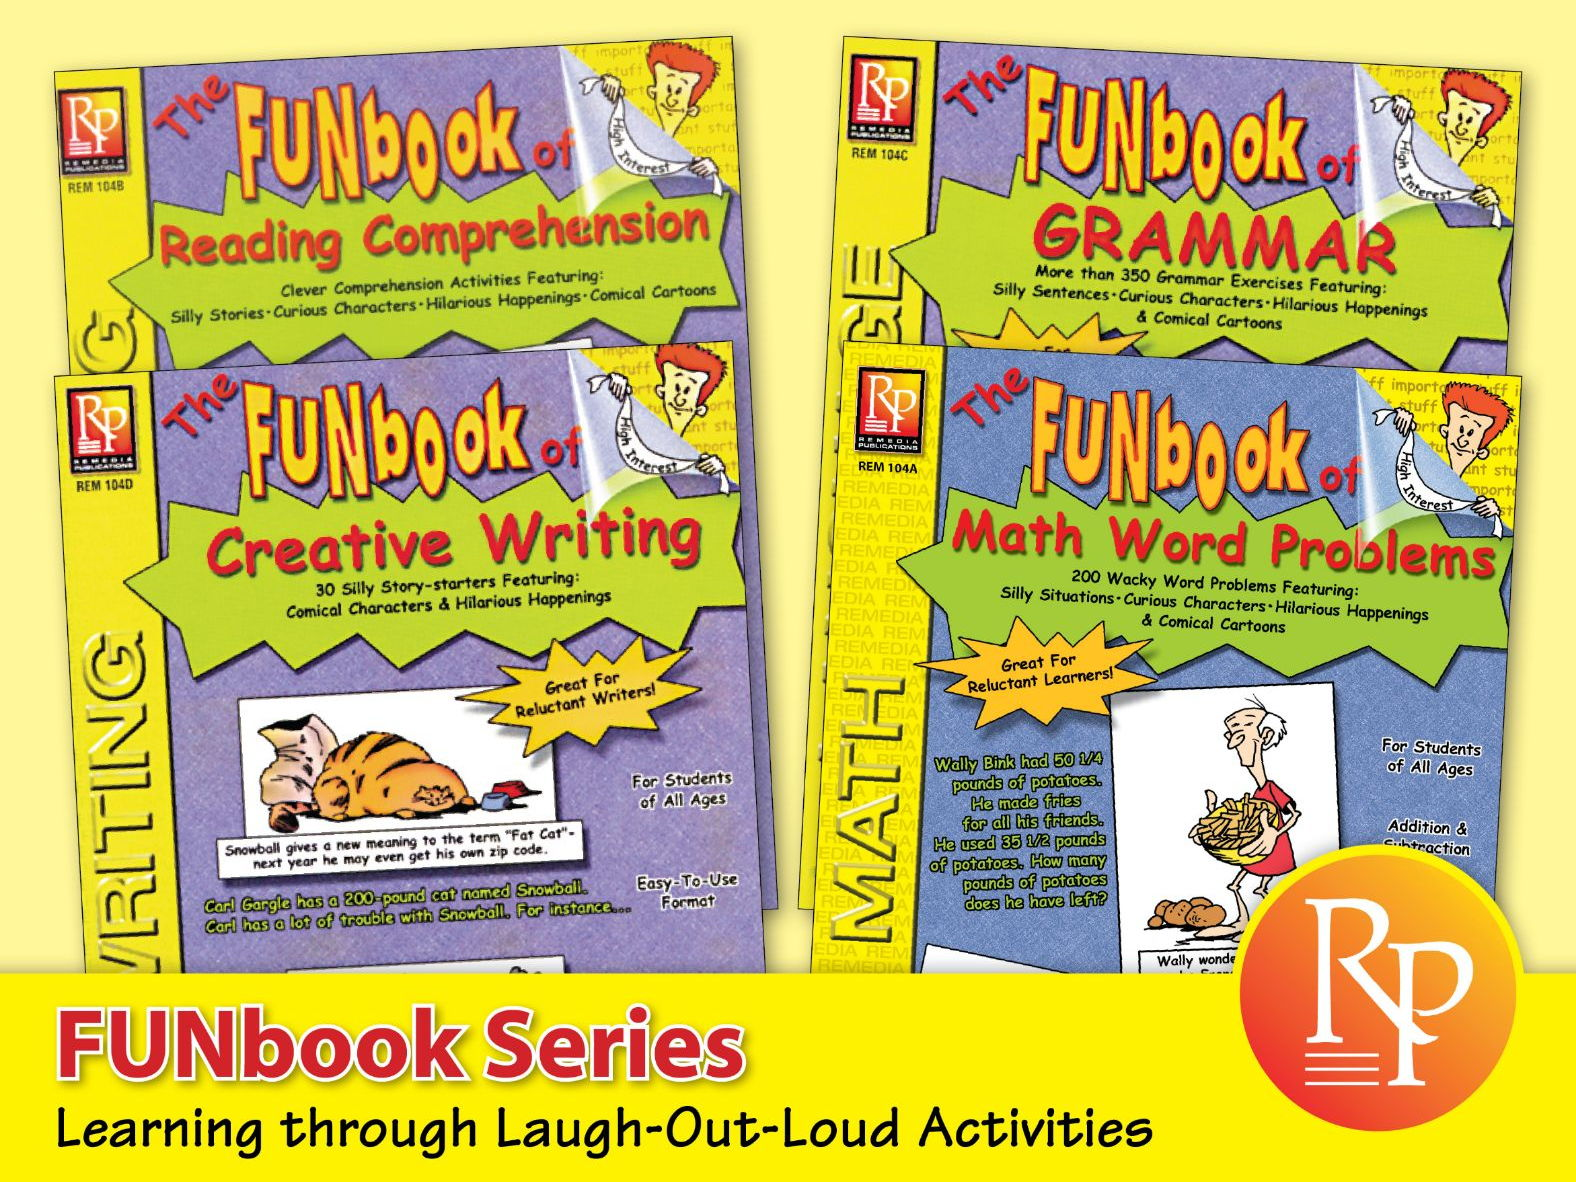 FUNbook Series